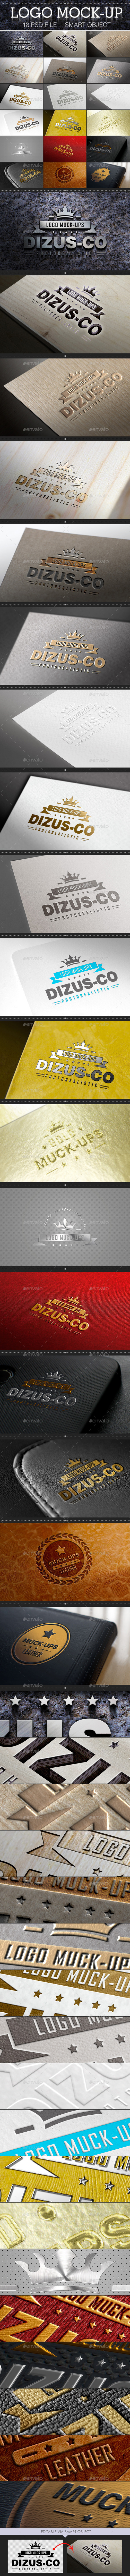 GraphicRiver Photorealistic Logo Mock-Ups 9552256